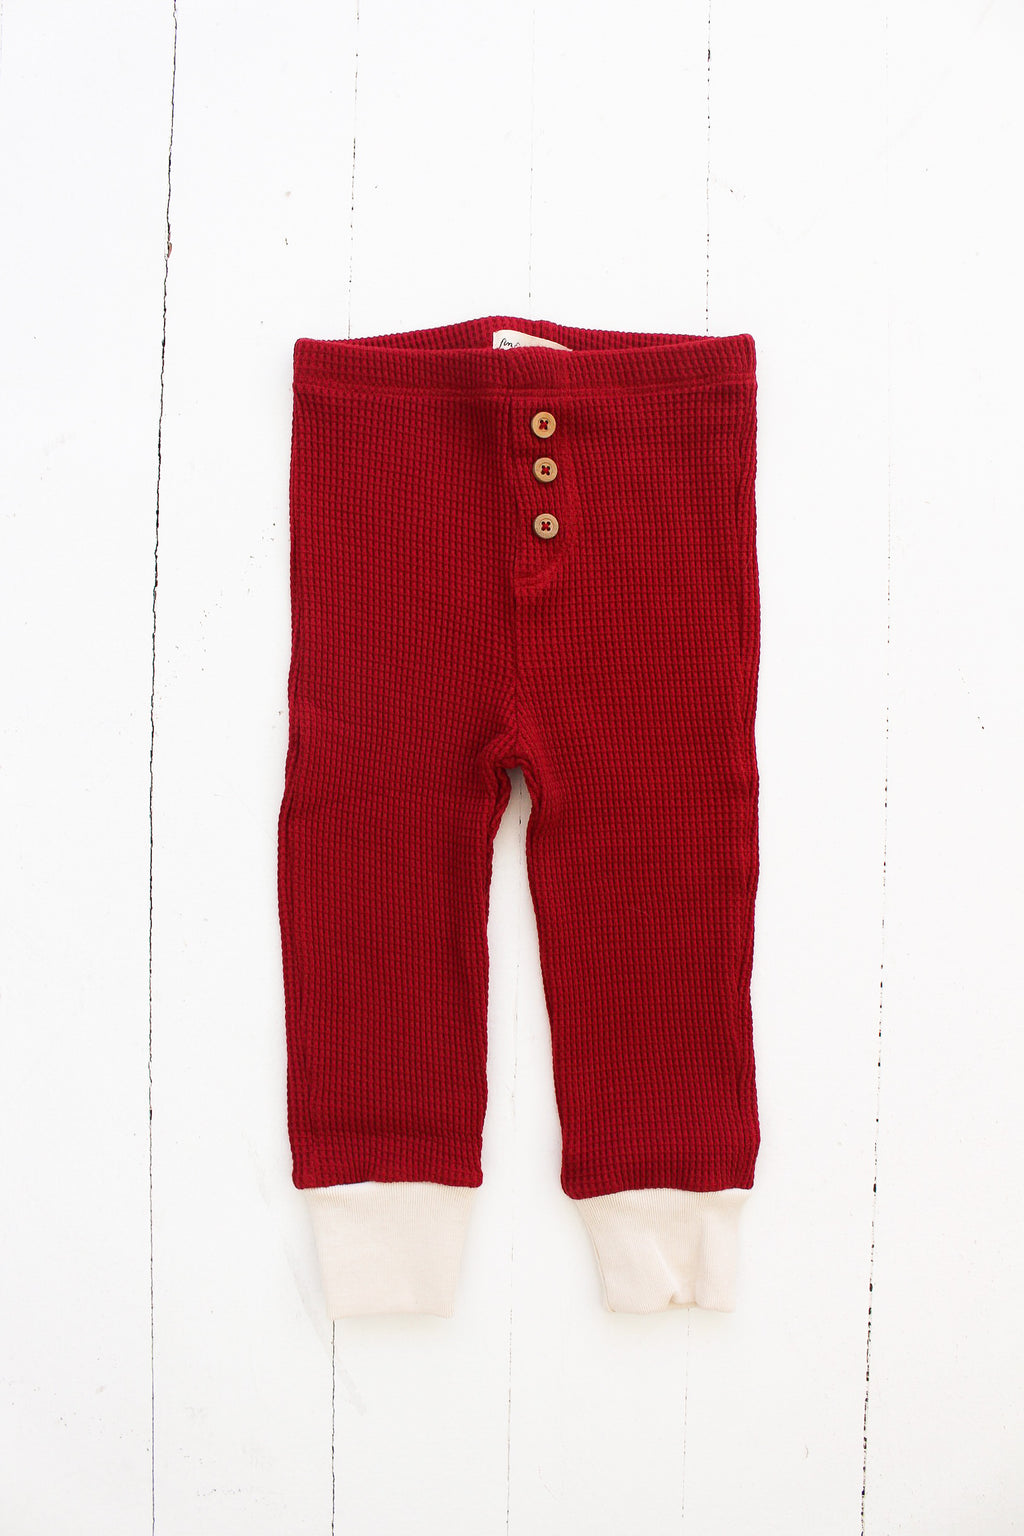 Fin and Vince - Button Pant (Waffle Crimson)